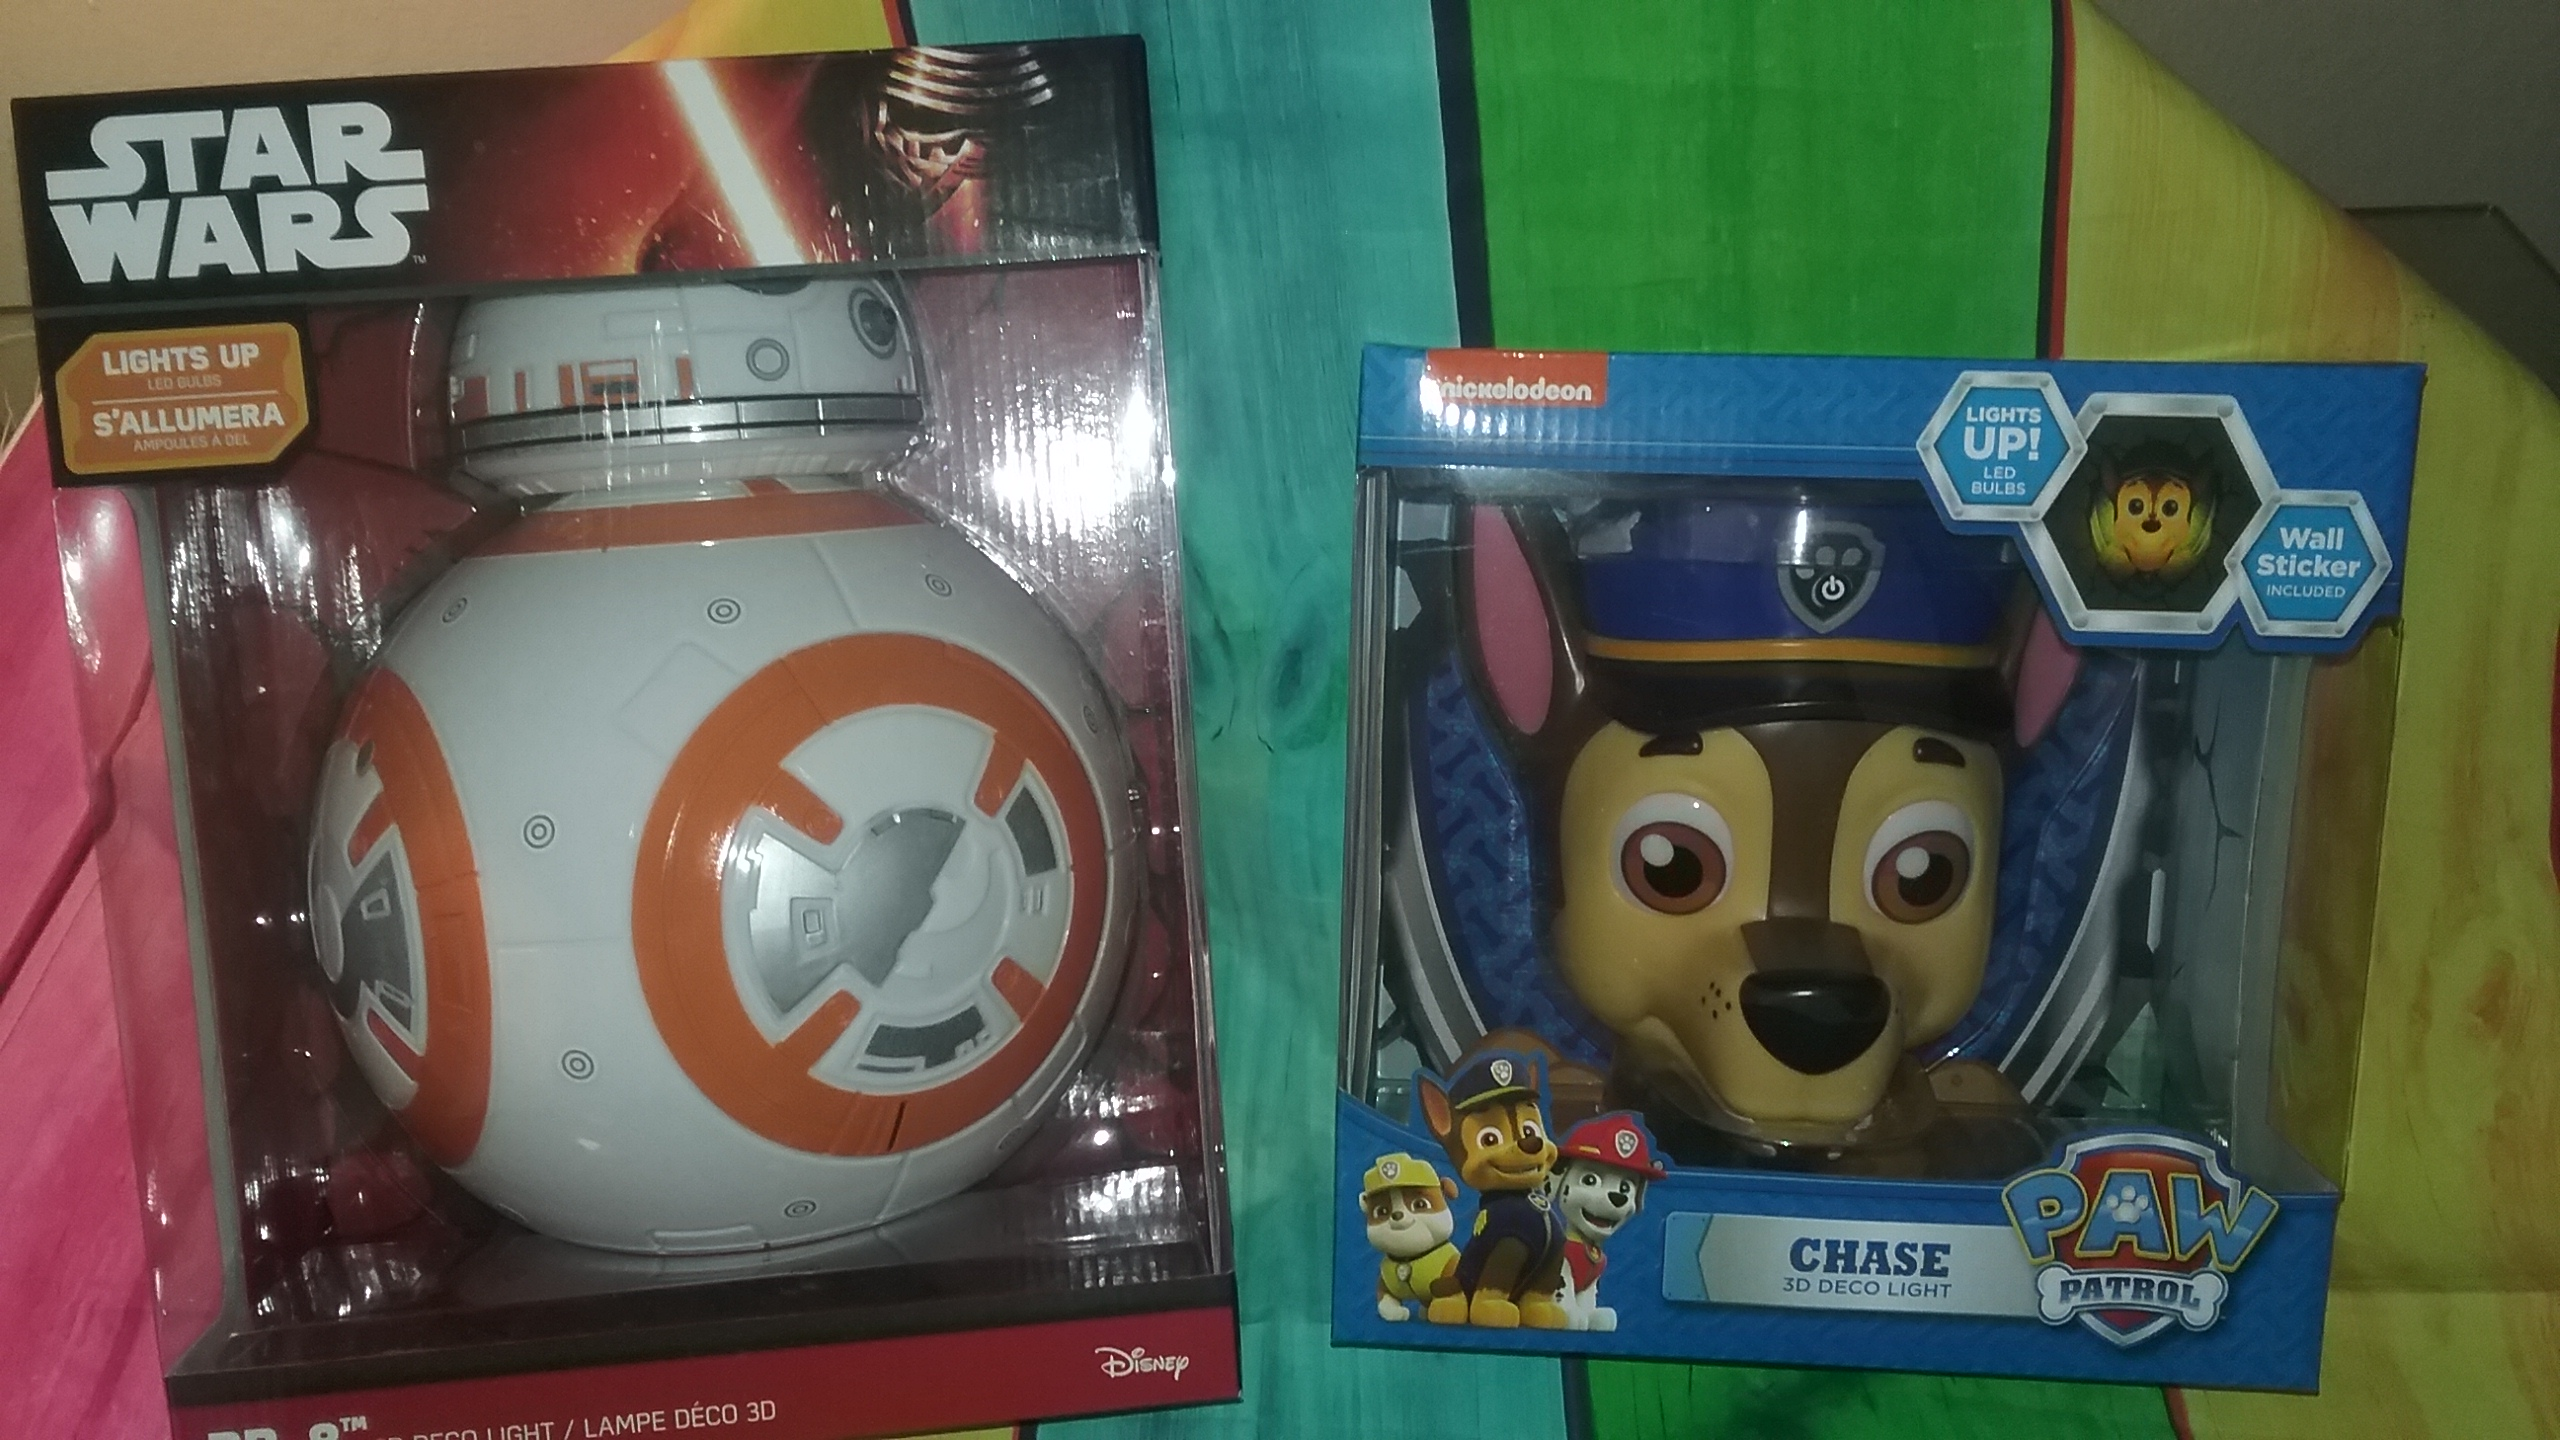 3DLight FX Lights, Paw Patrol Chase Nightlight & Star Wars BB-8 Droid. Jazz Up Your Kids Walls!